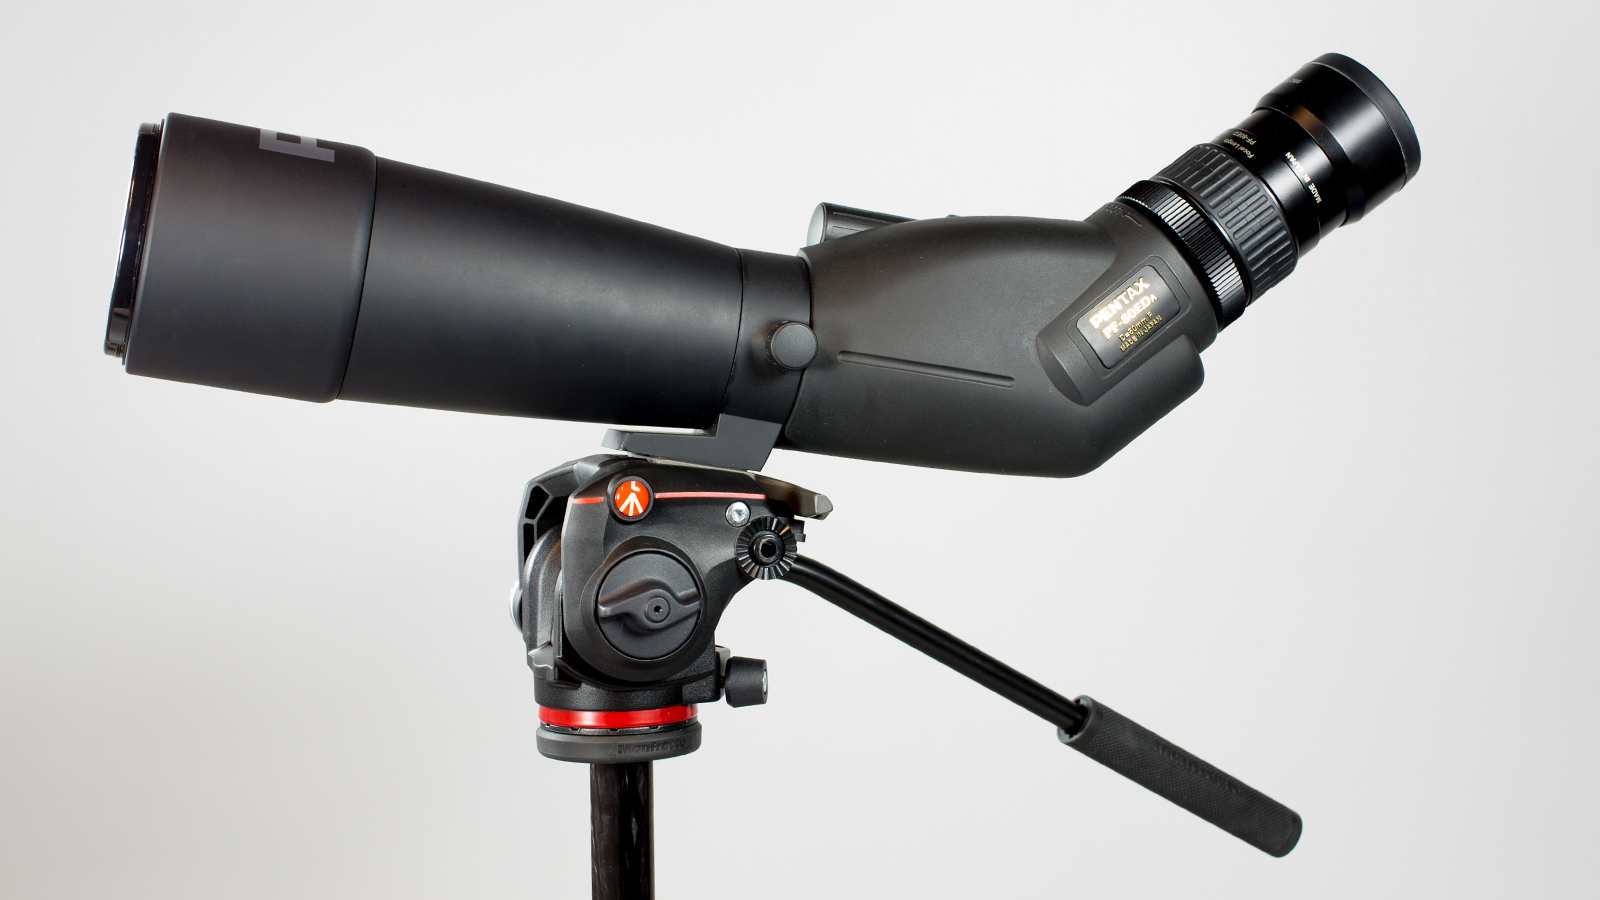 Manfrotto-MHXPRO-2W-DT-014-vaatetoruga